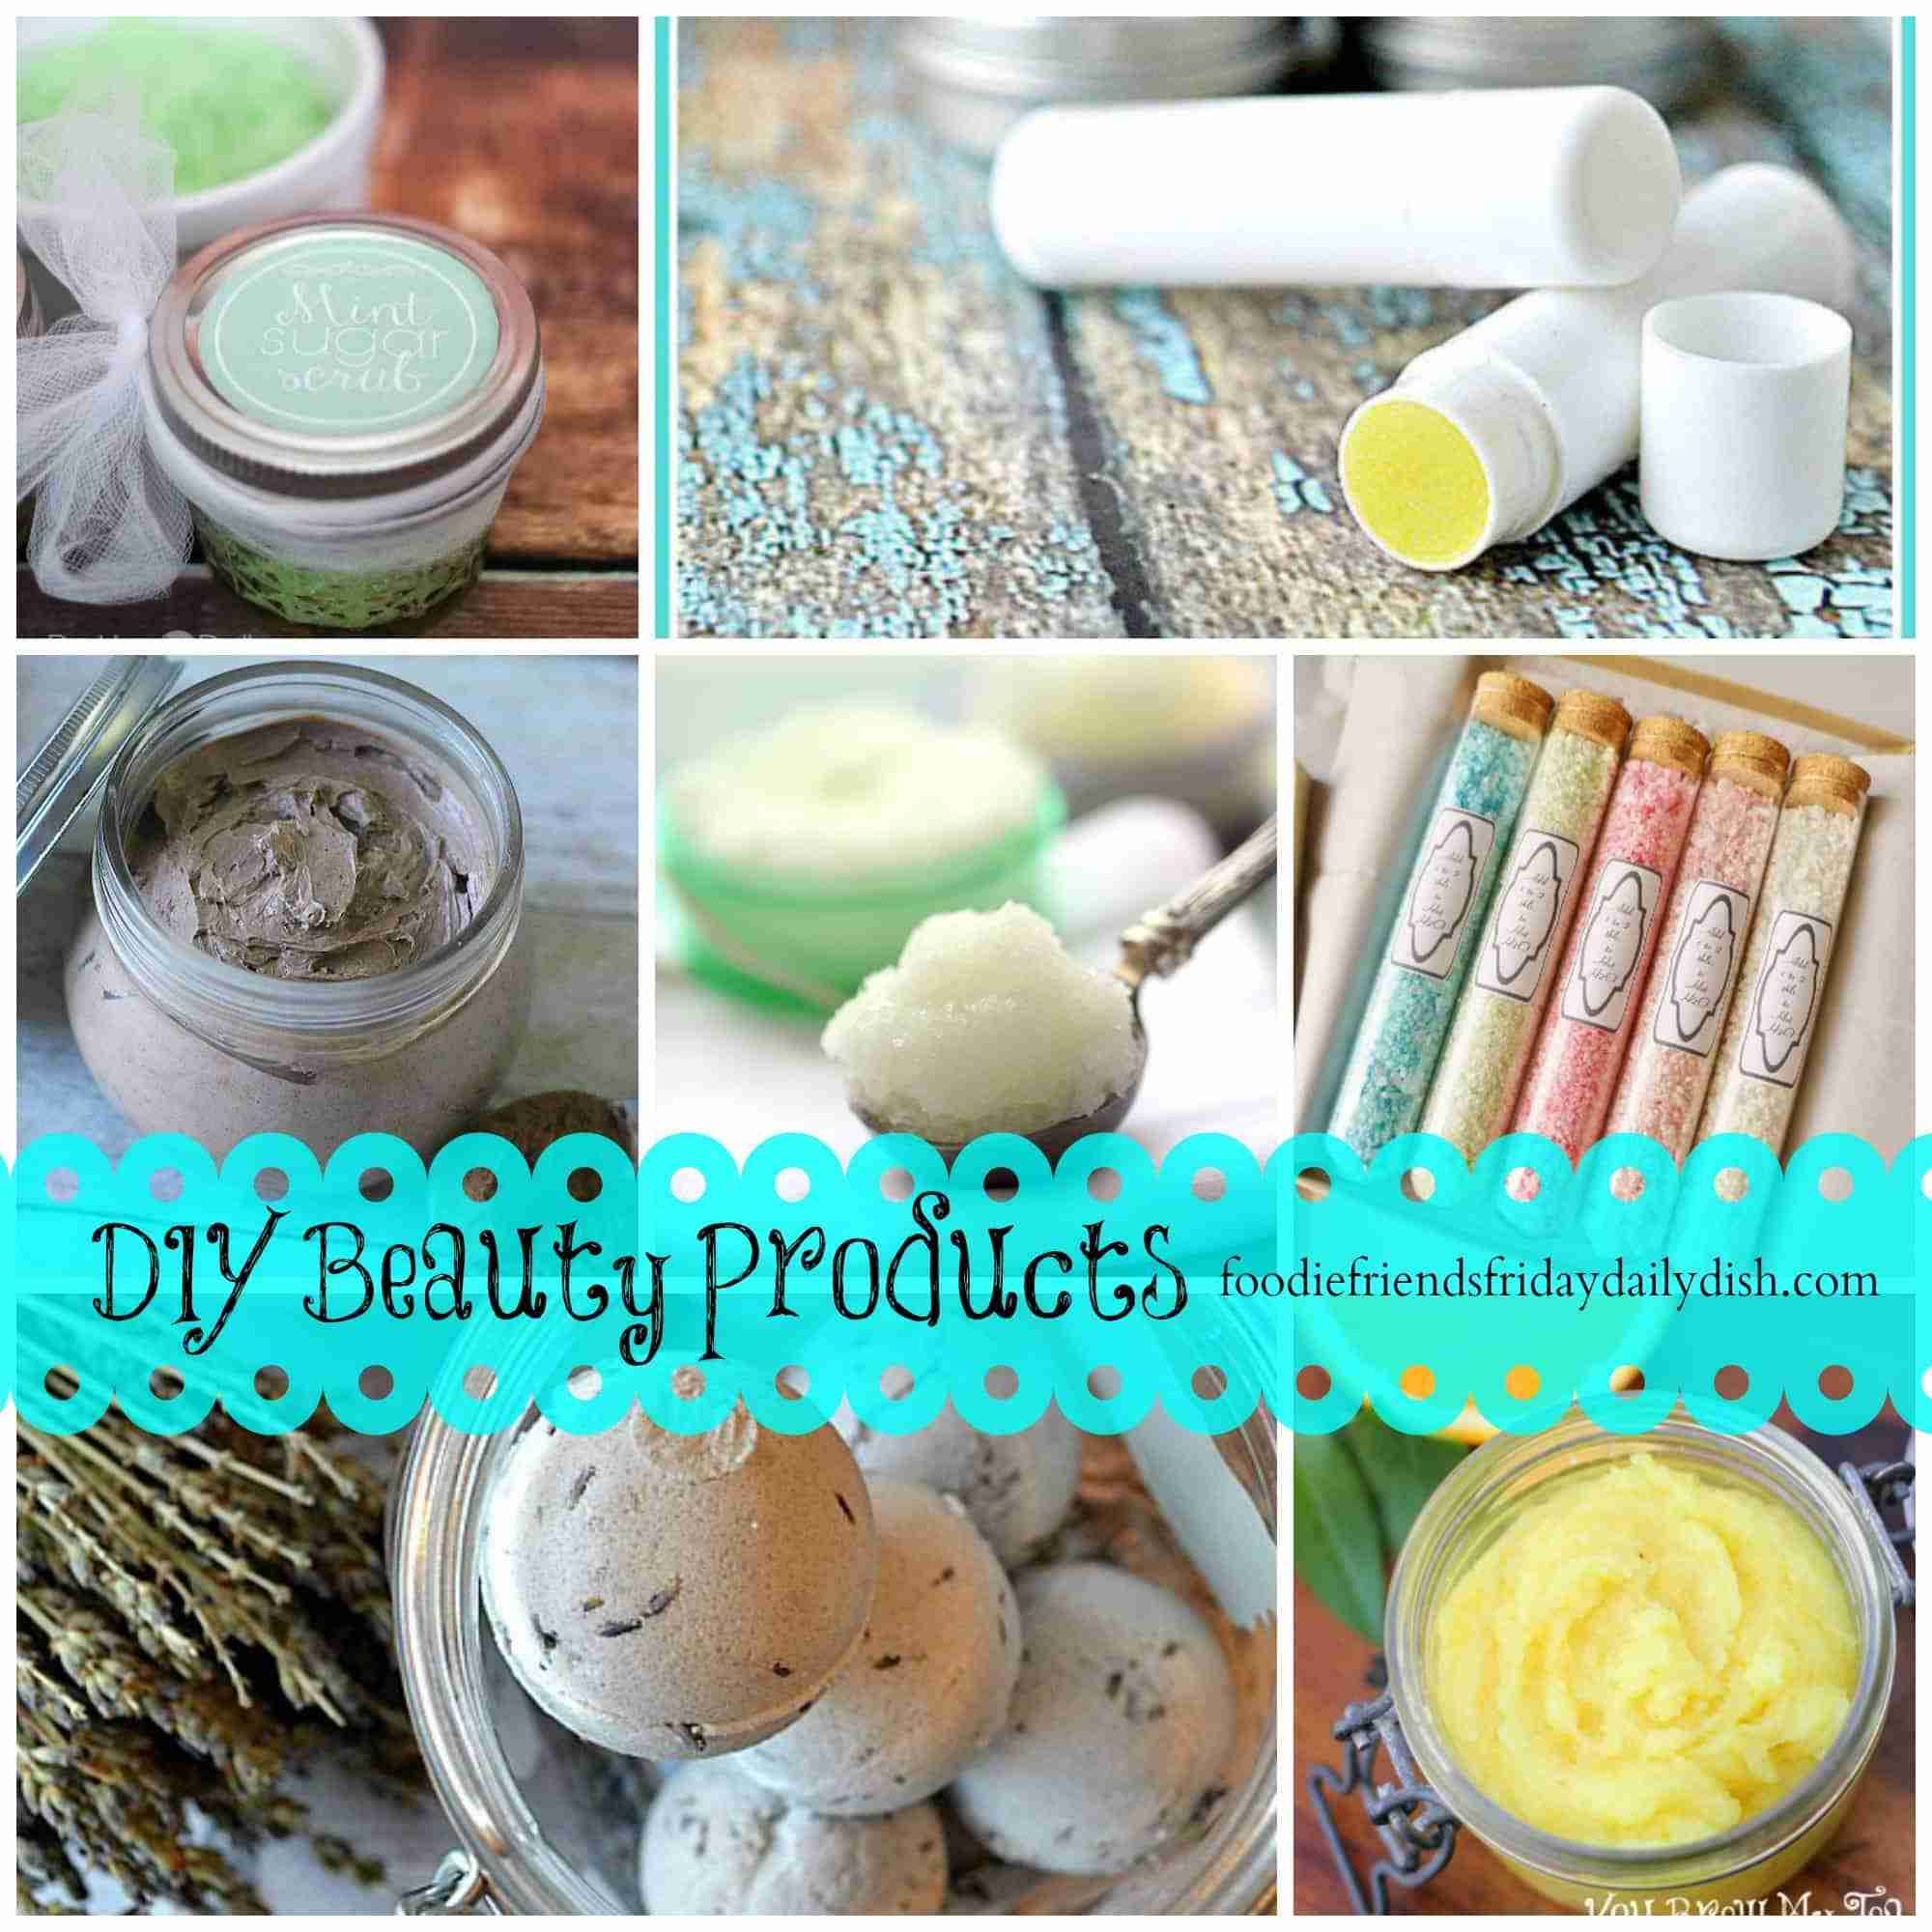 diy beauty products DD